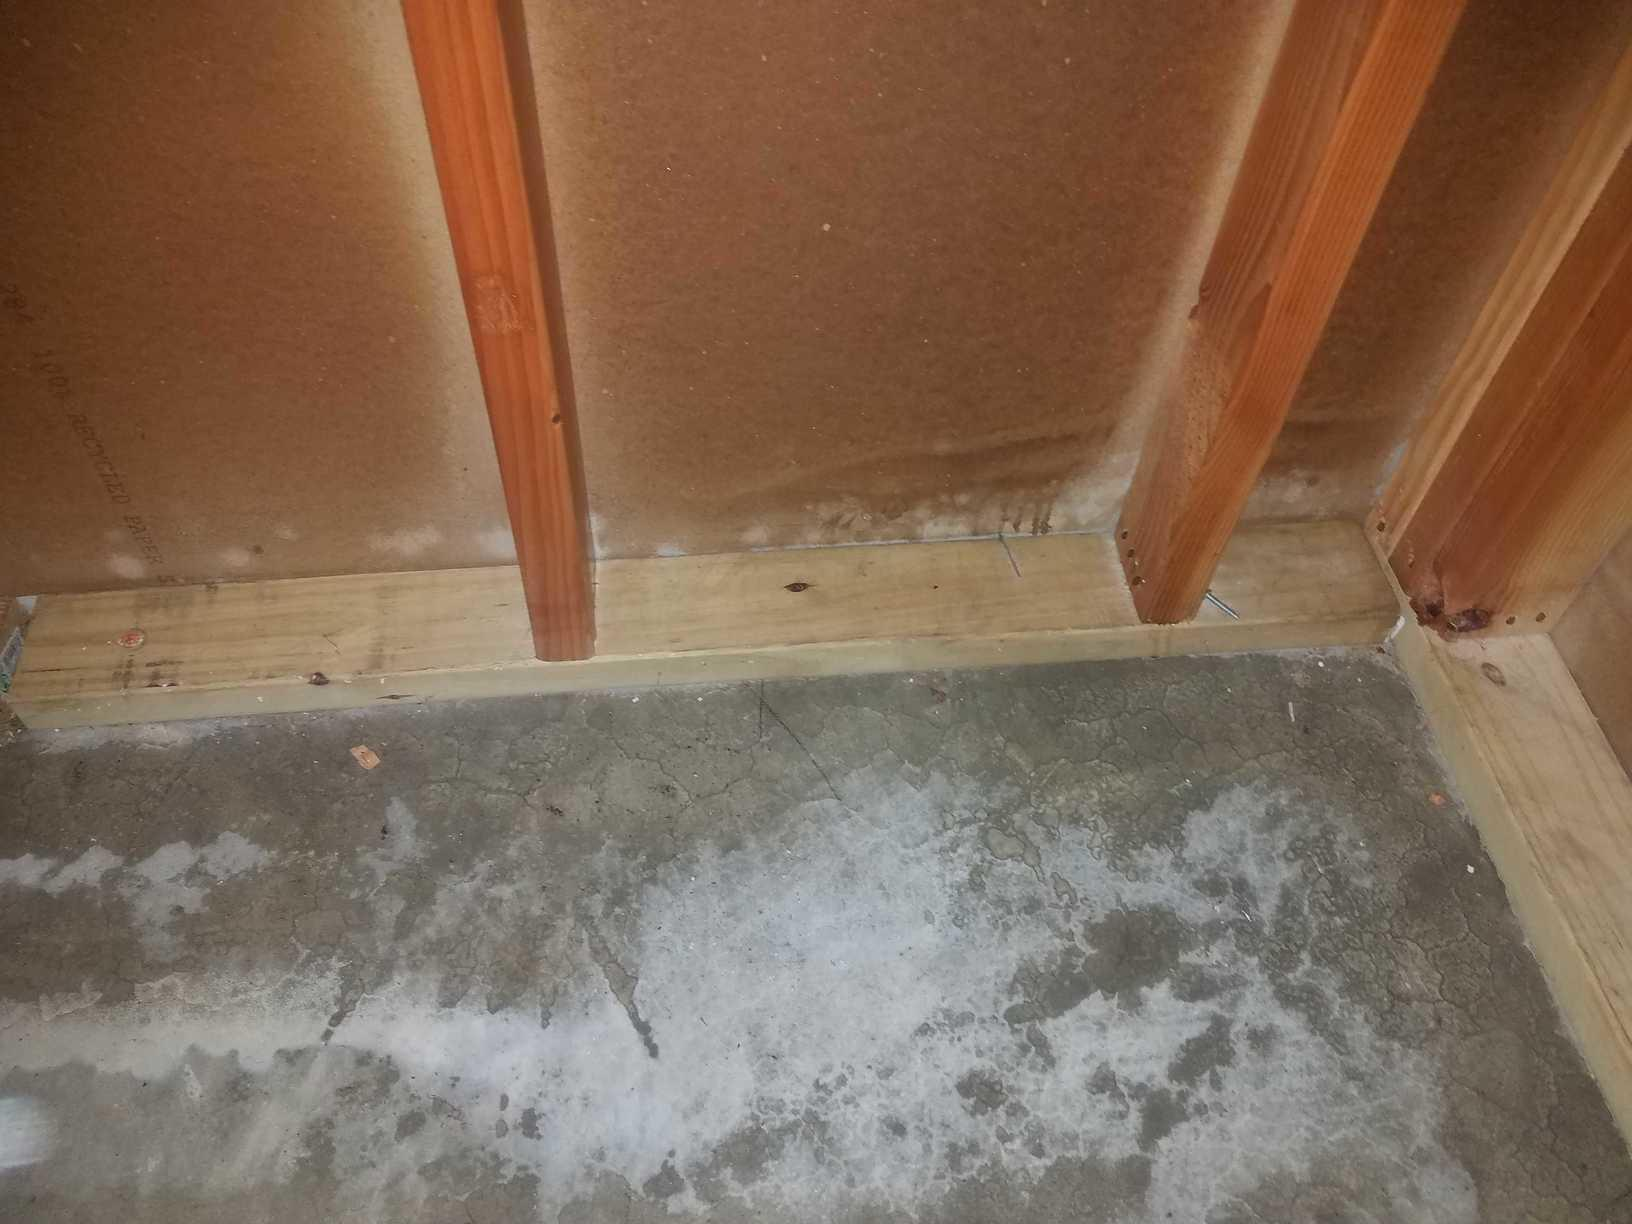 Groundwater Seeps Into Basement and Causes Mold in Toms River, NJ - After Photo